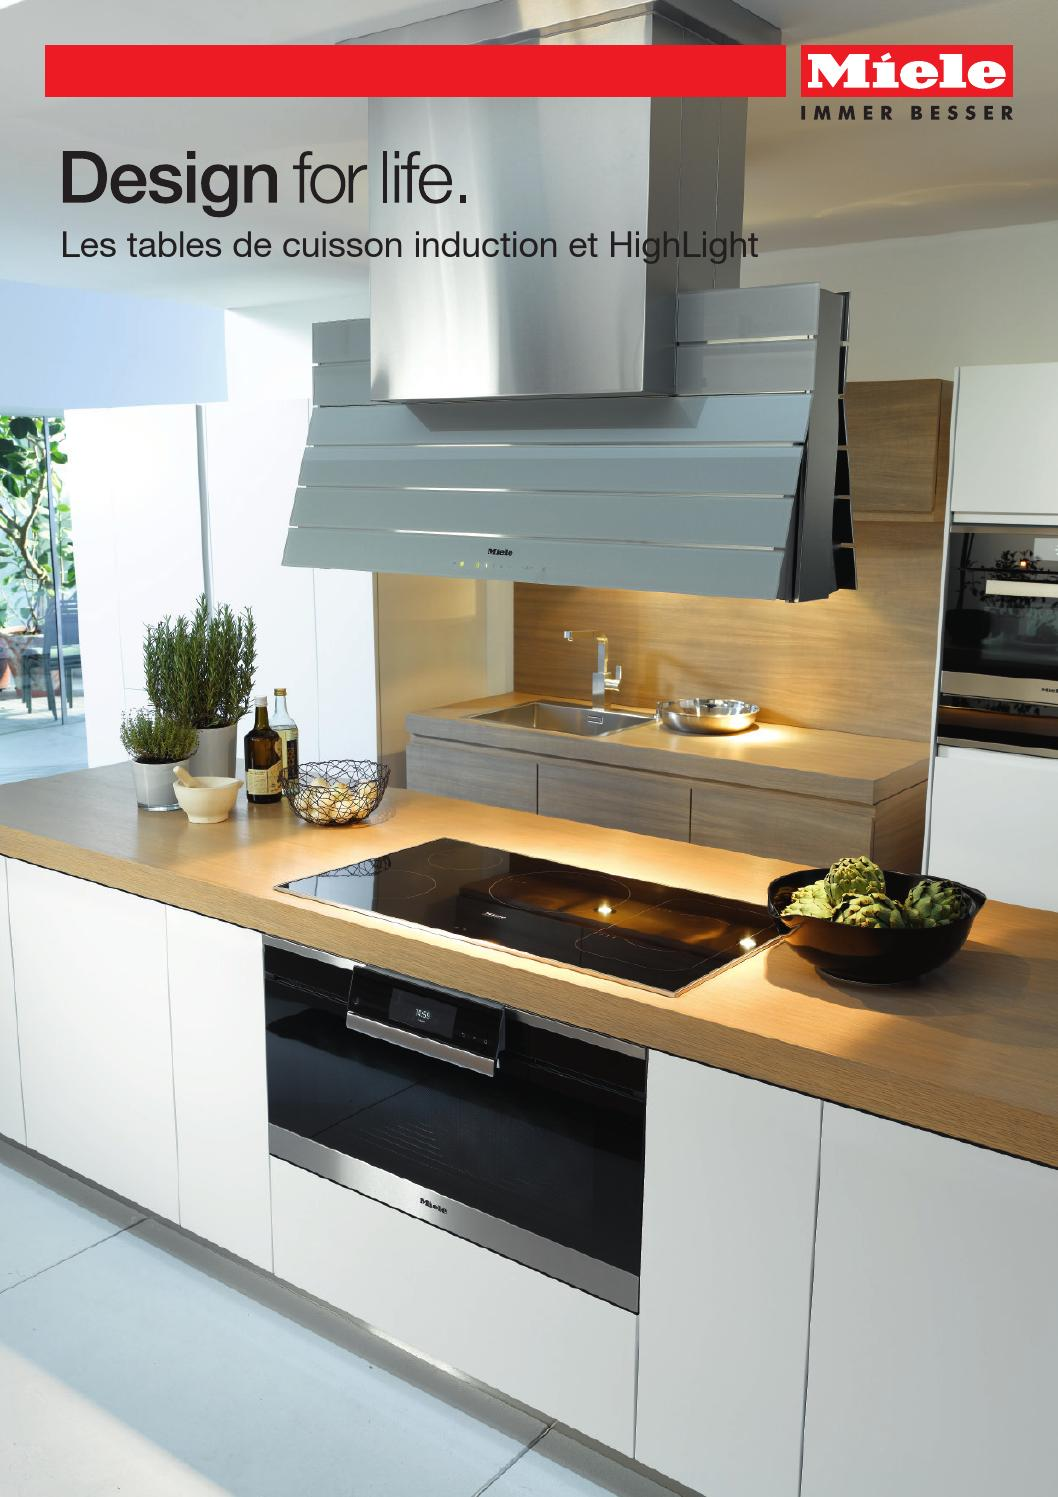 miele catalogue les tables de cuisson induction et highlight fr by miele issuu. Black Bedroom Furniture Sets. Home Design Ideas